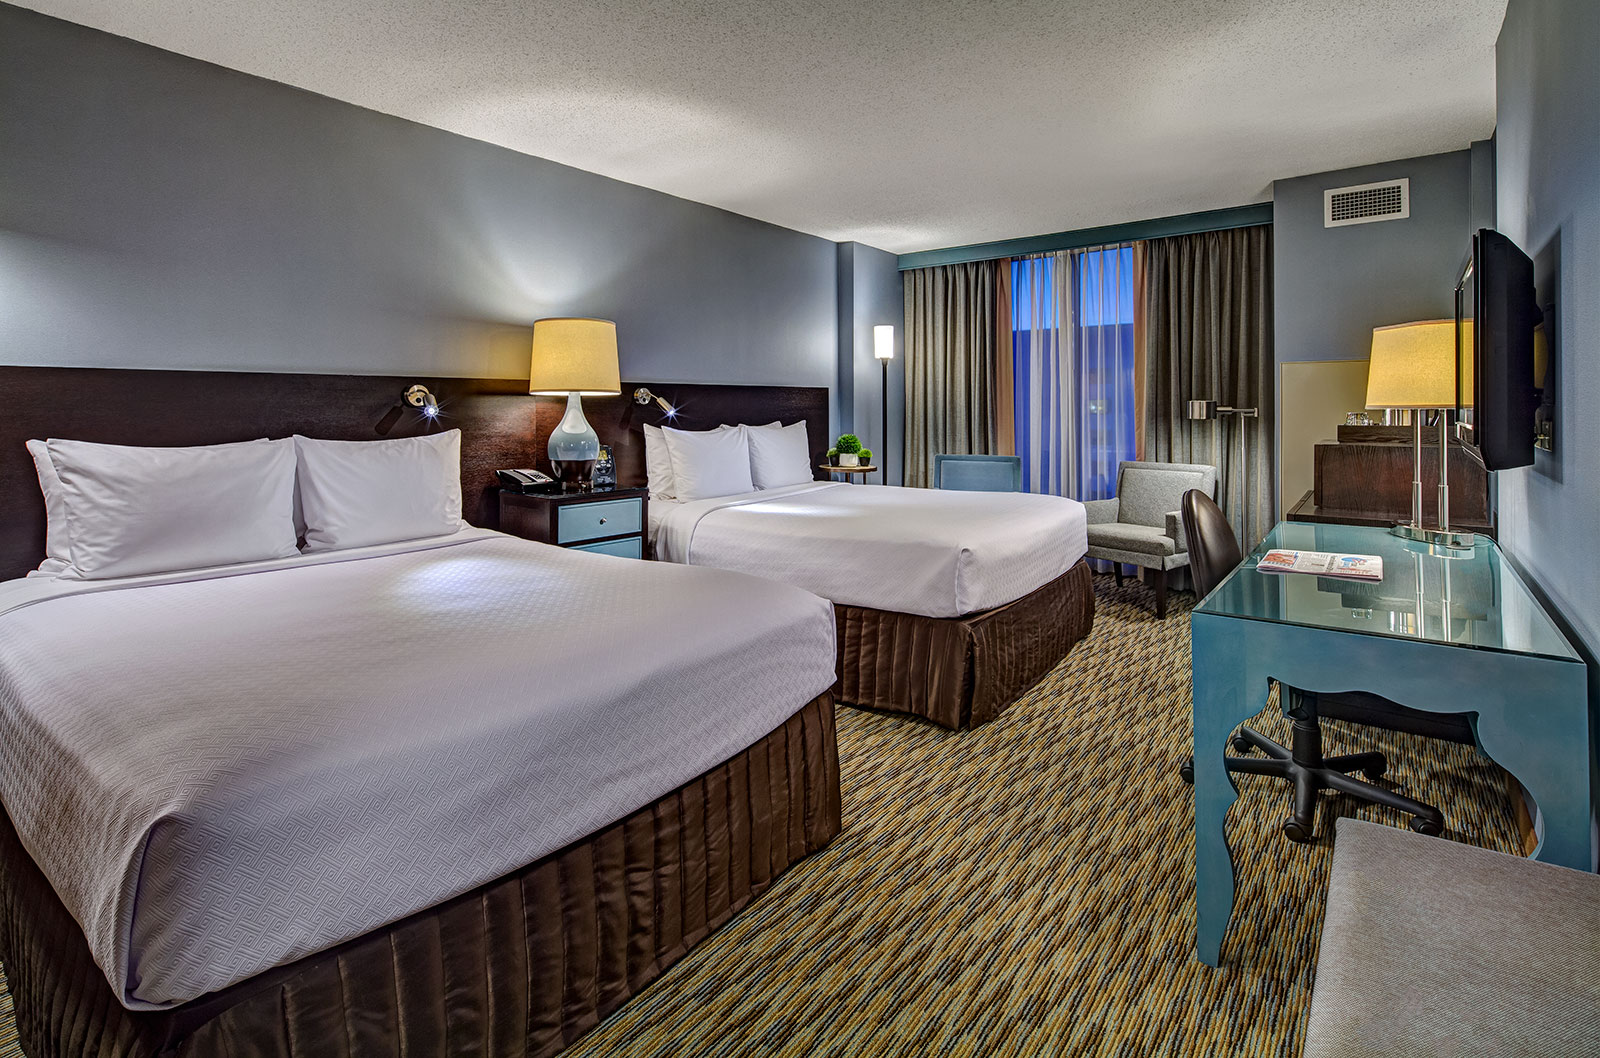 Chicago's Most Functional (and Fun) Hotels for Students